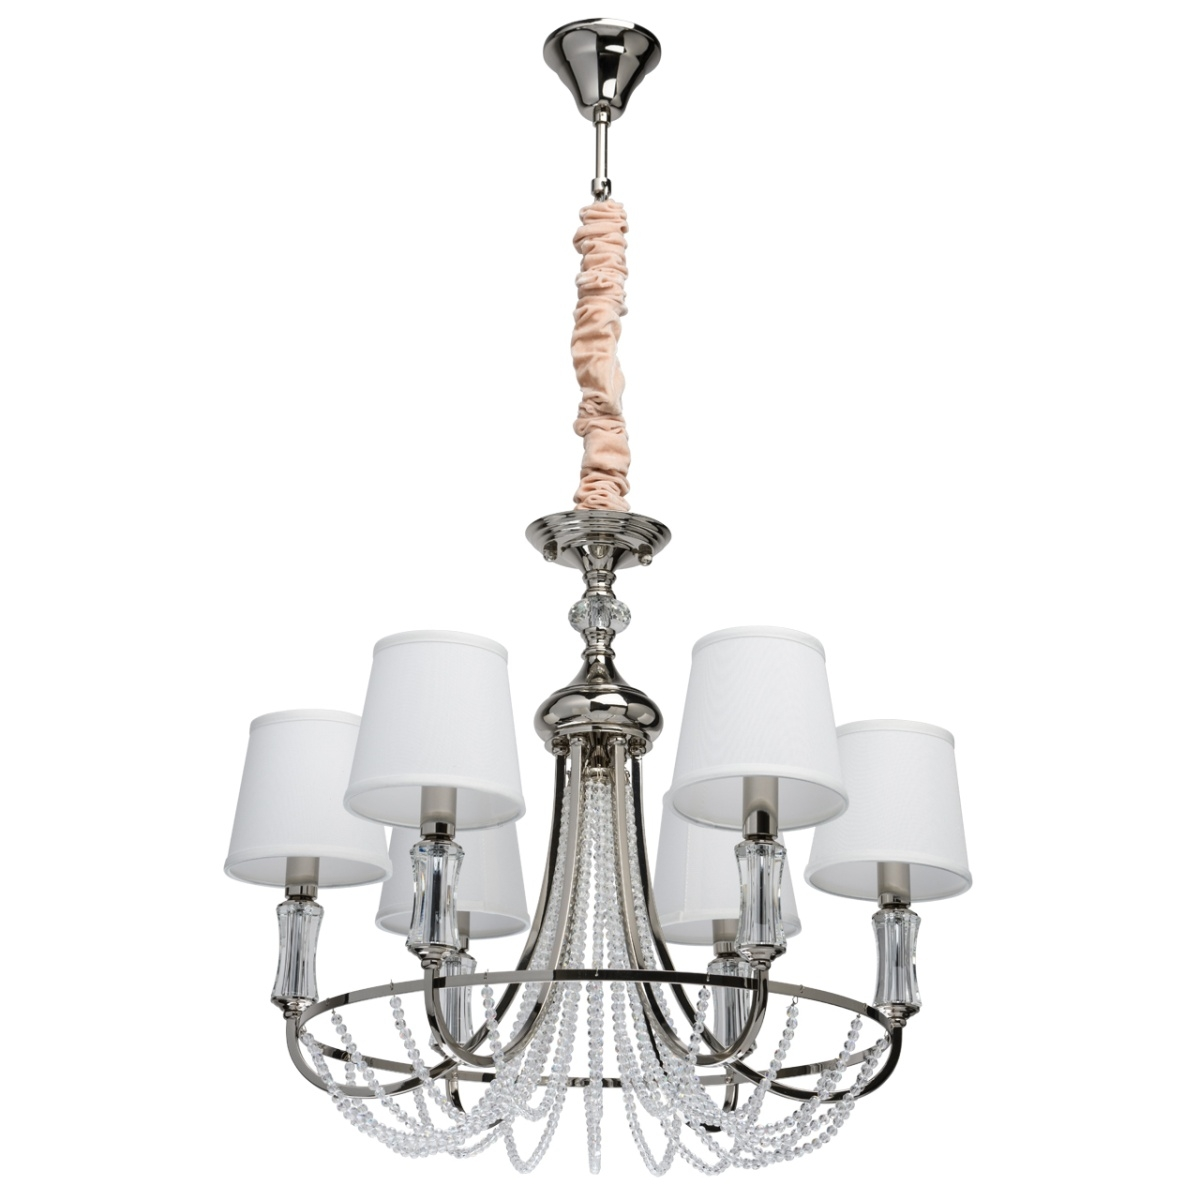 Candelabru Light Elegance Napoli Imagine